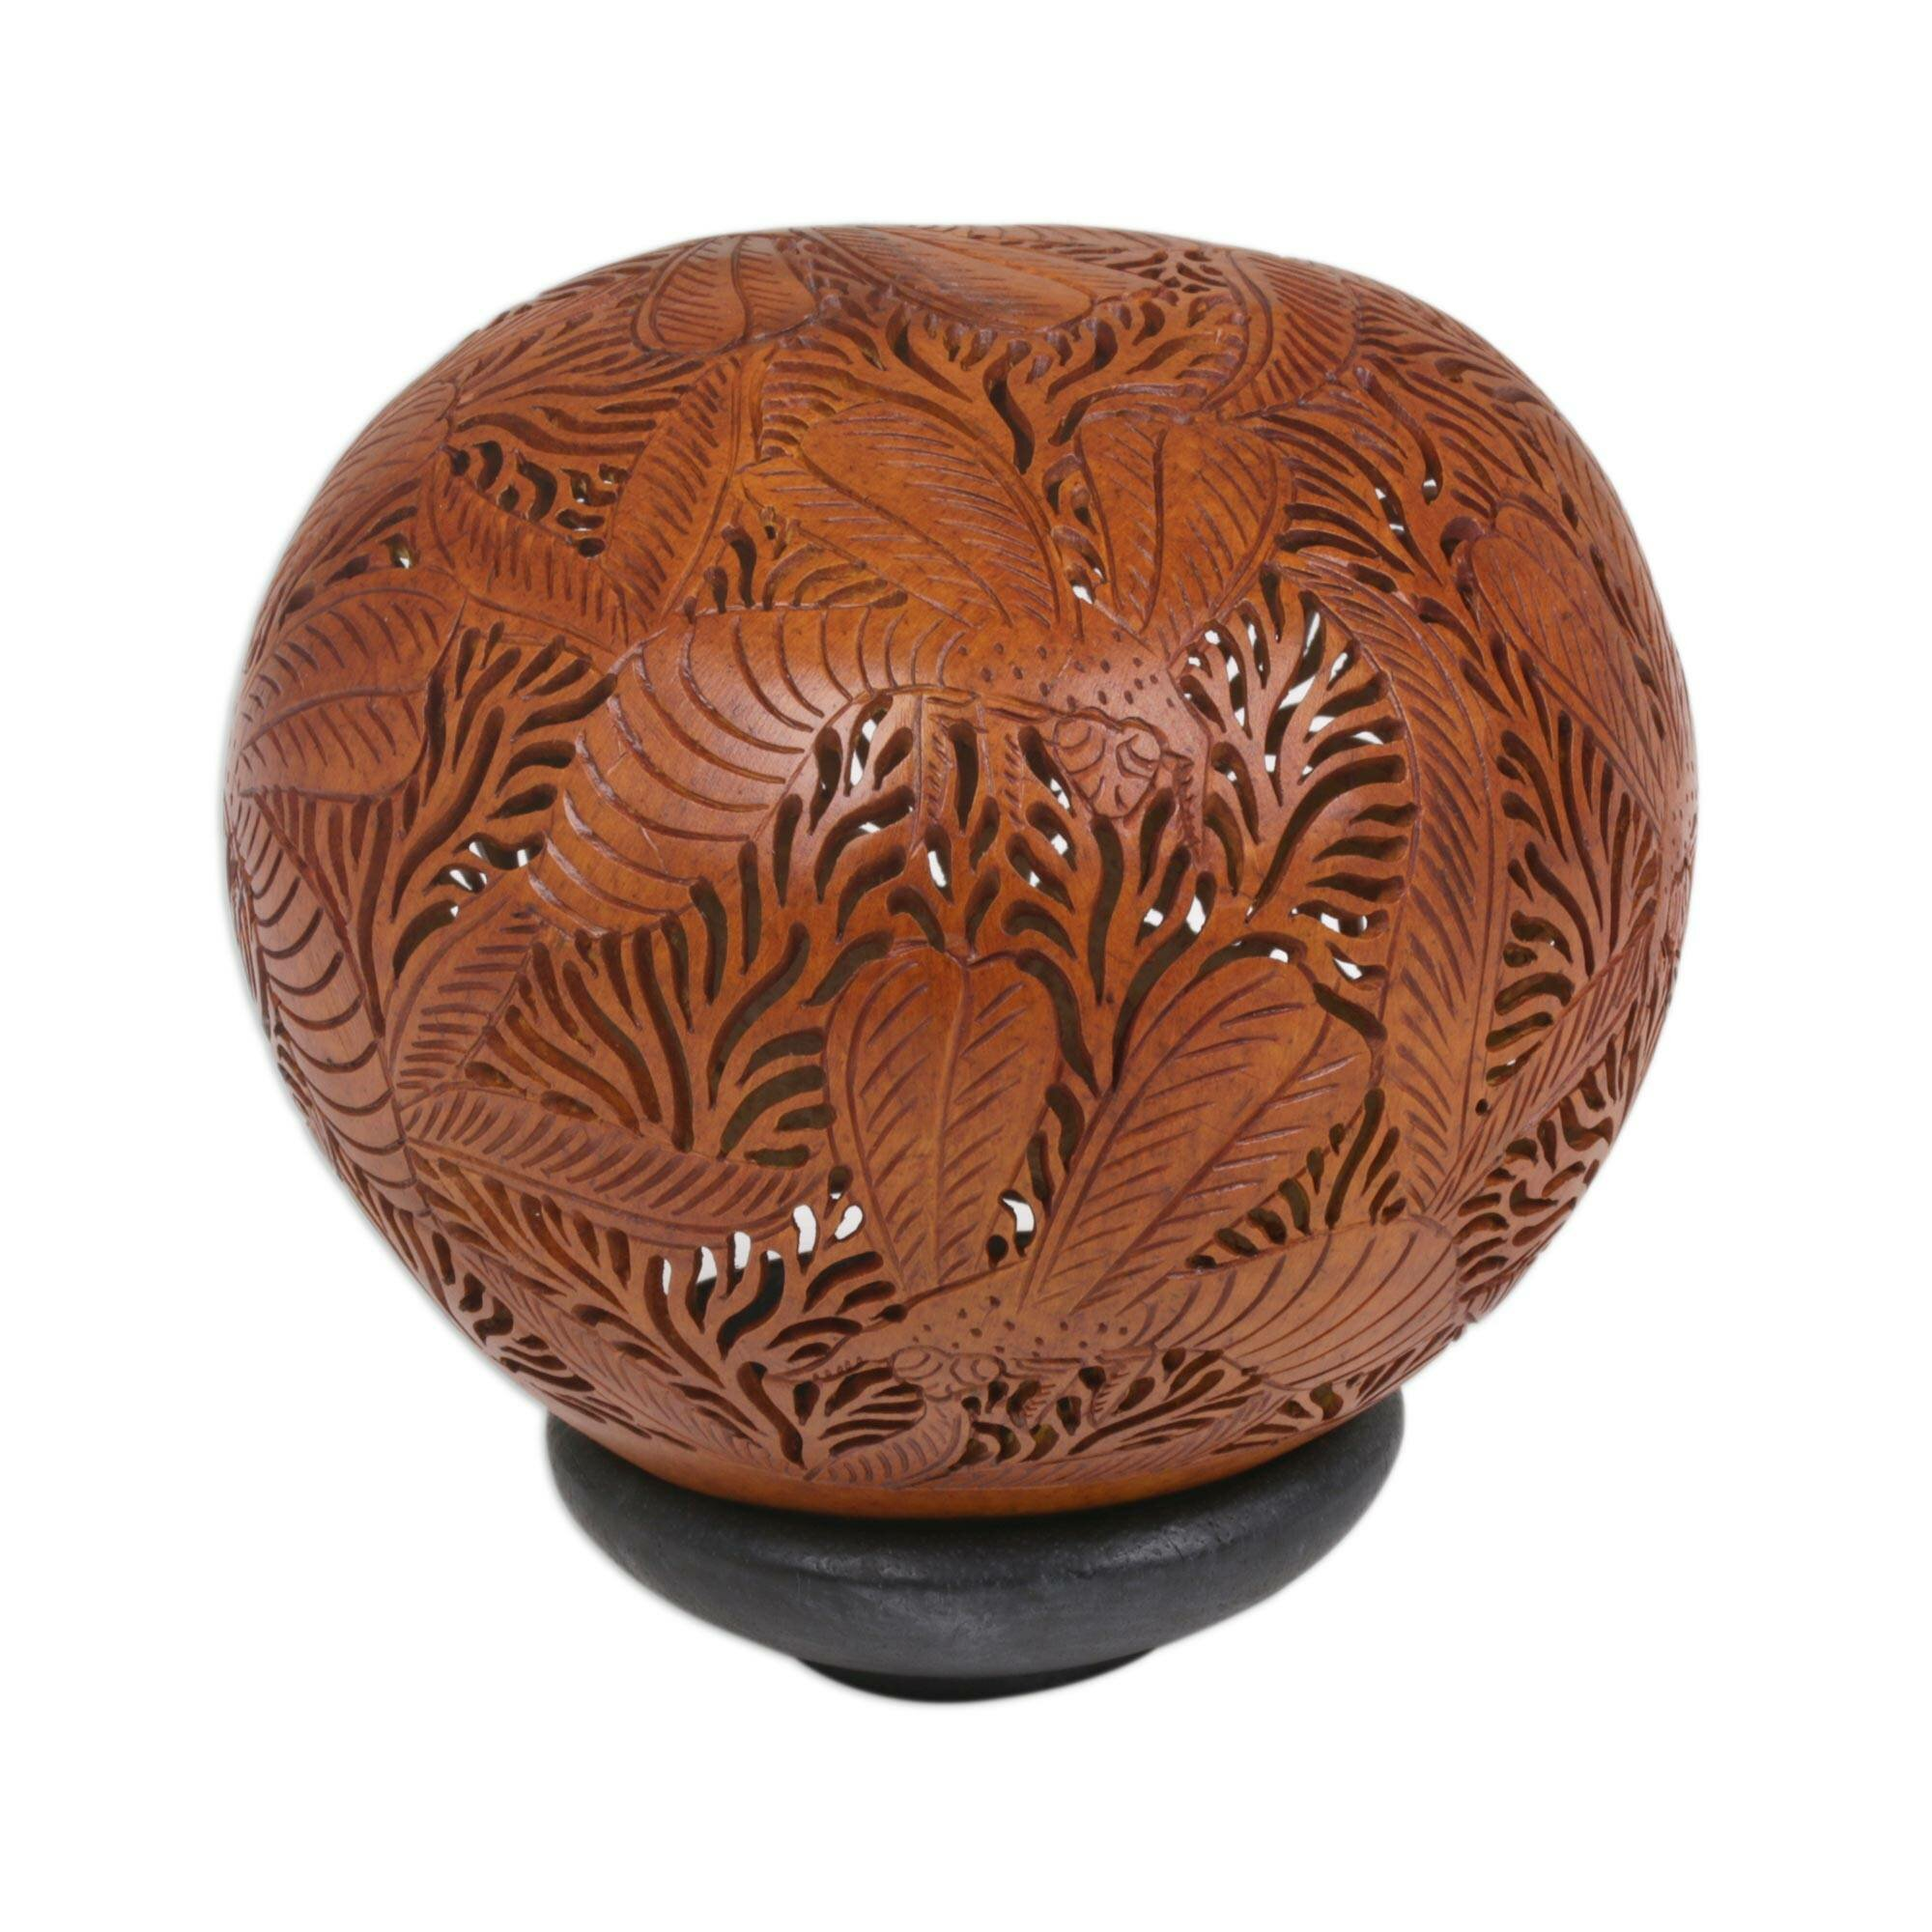 Novica busy bees coconut shell carving sculpture wayfair